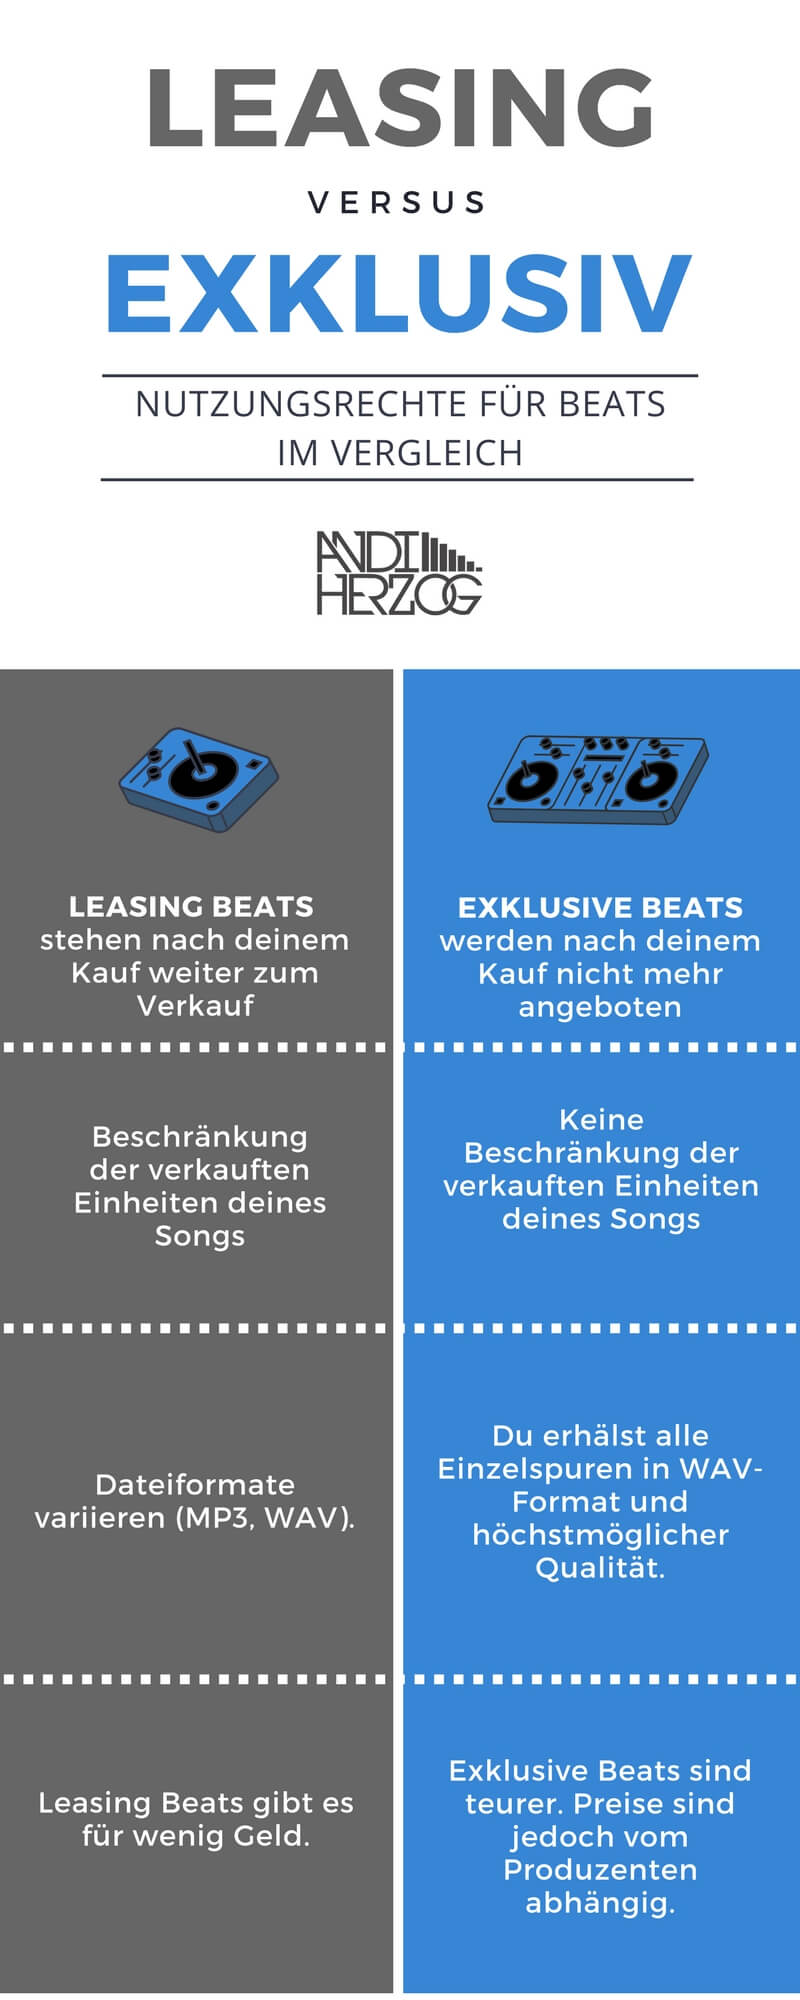 Infografik Leasing Beats vs. Exklusive Beats